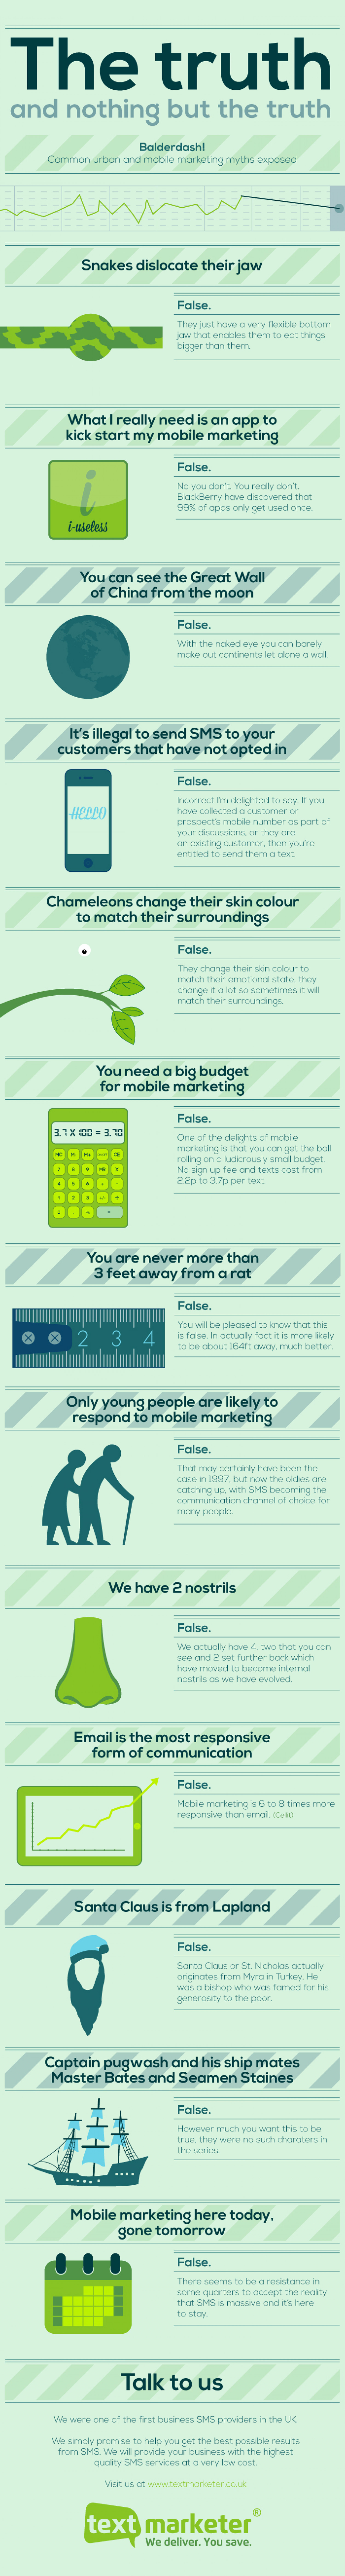 The truth and nothing but the truth Infographic